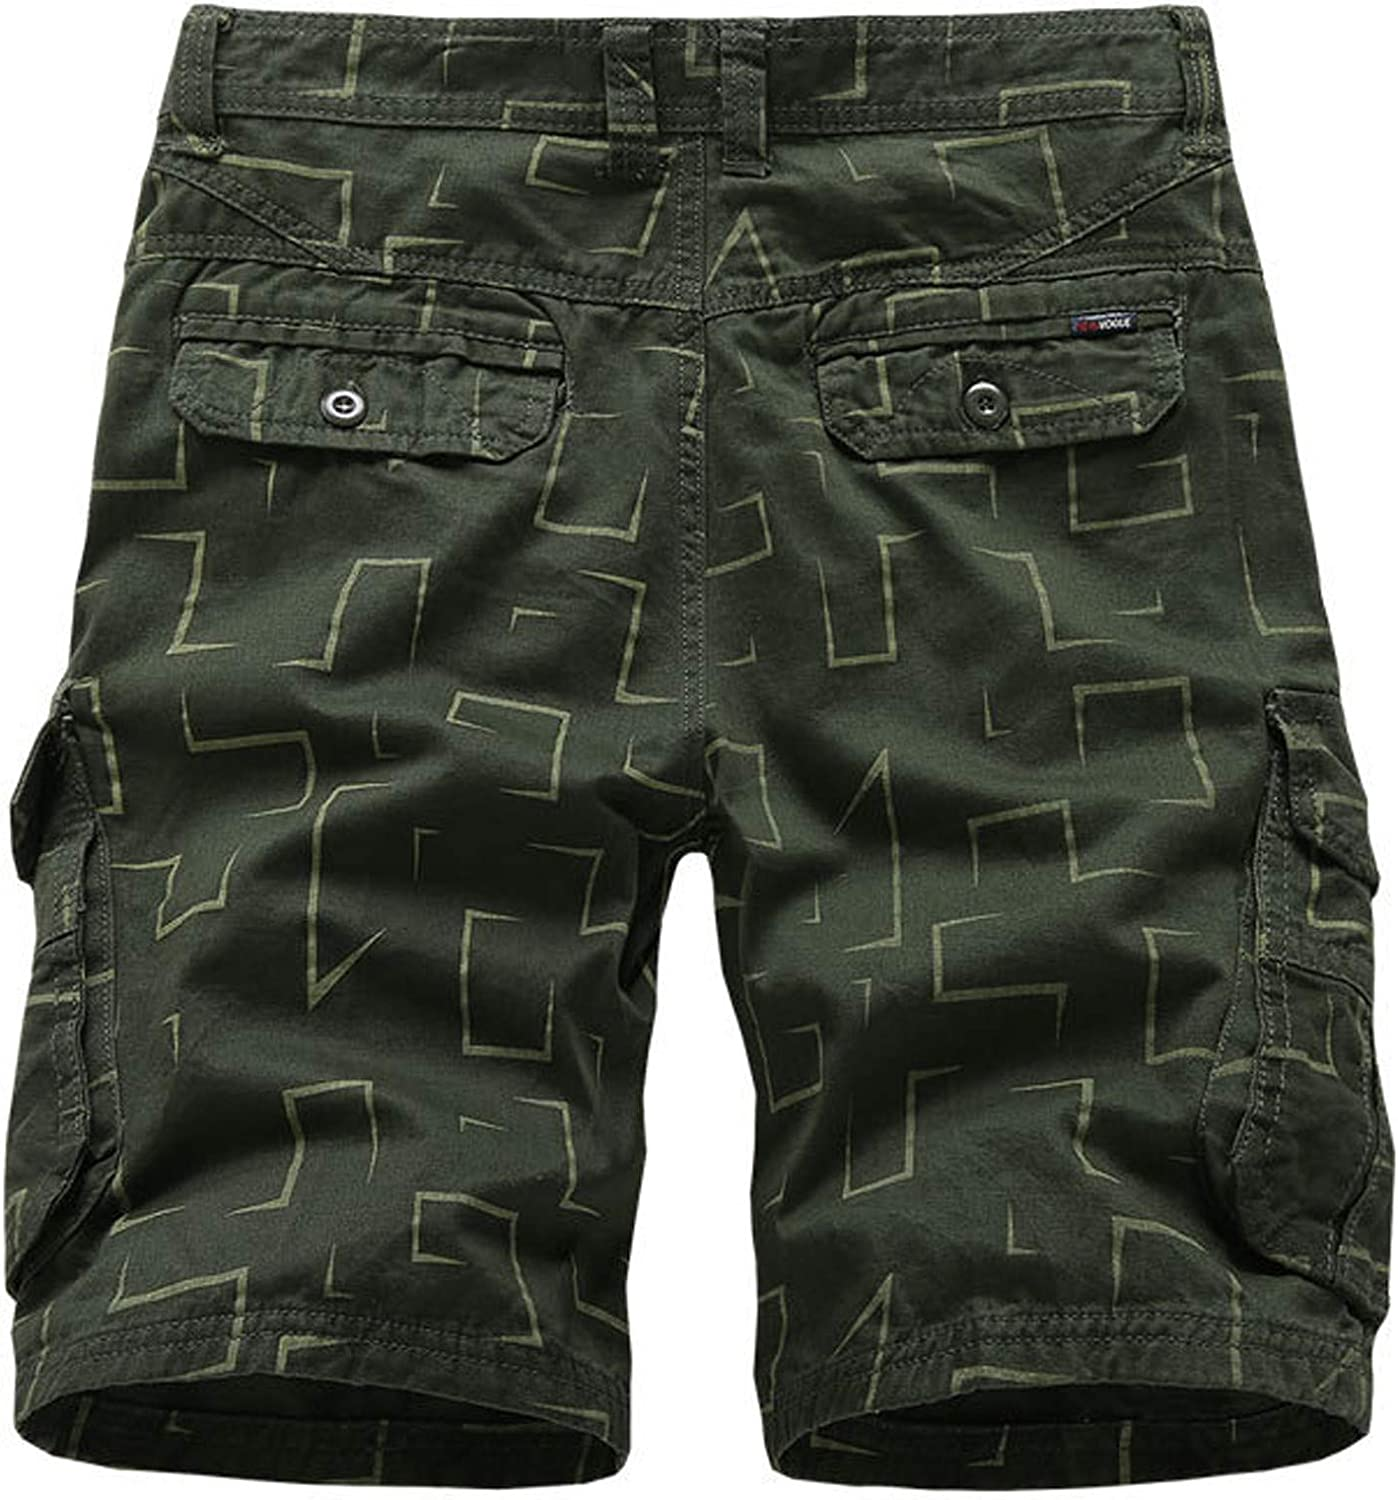 WYTong Men's Active Shorts Casual Solid Color Outdoors Pocket Beach Work Trouser Cargo Shorts Pant